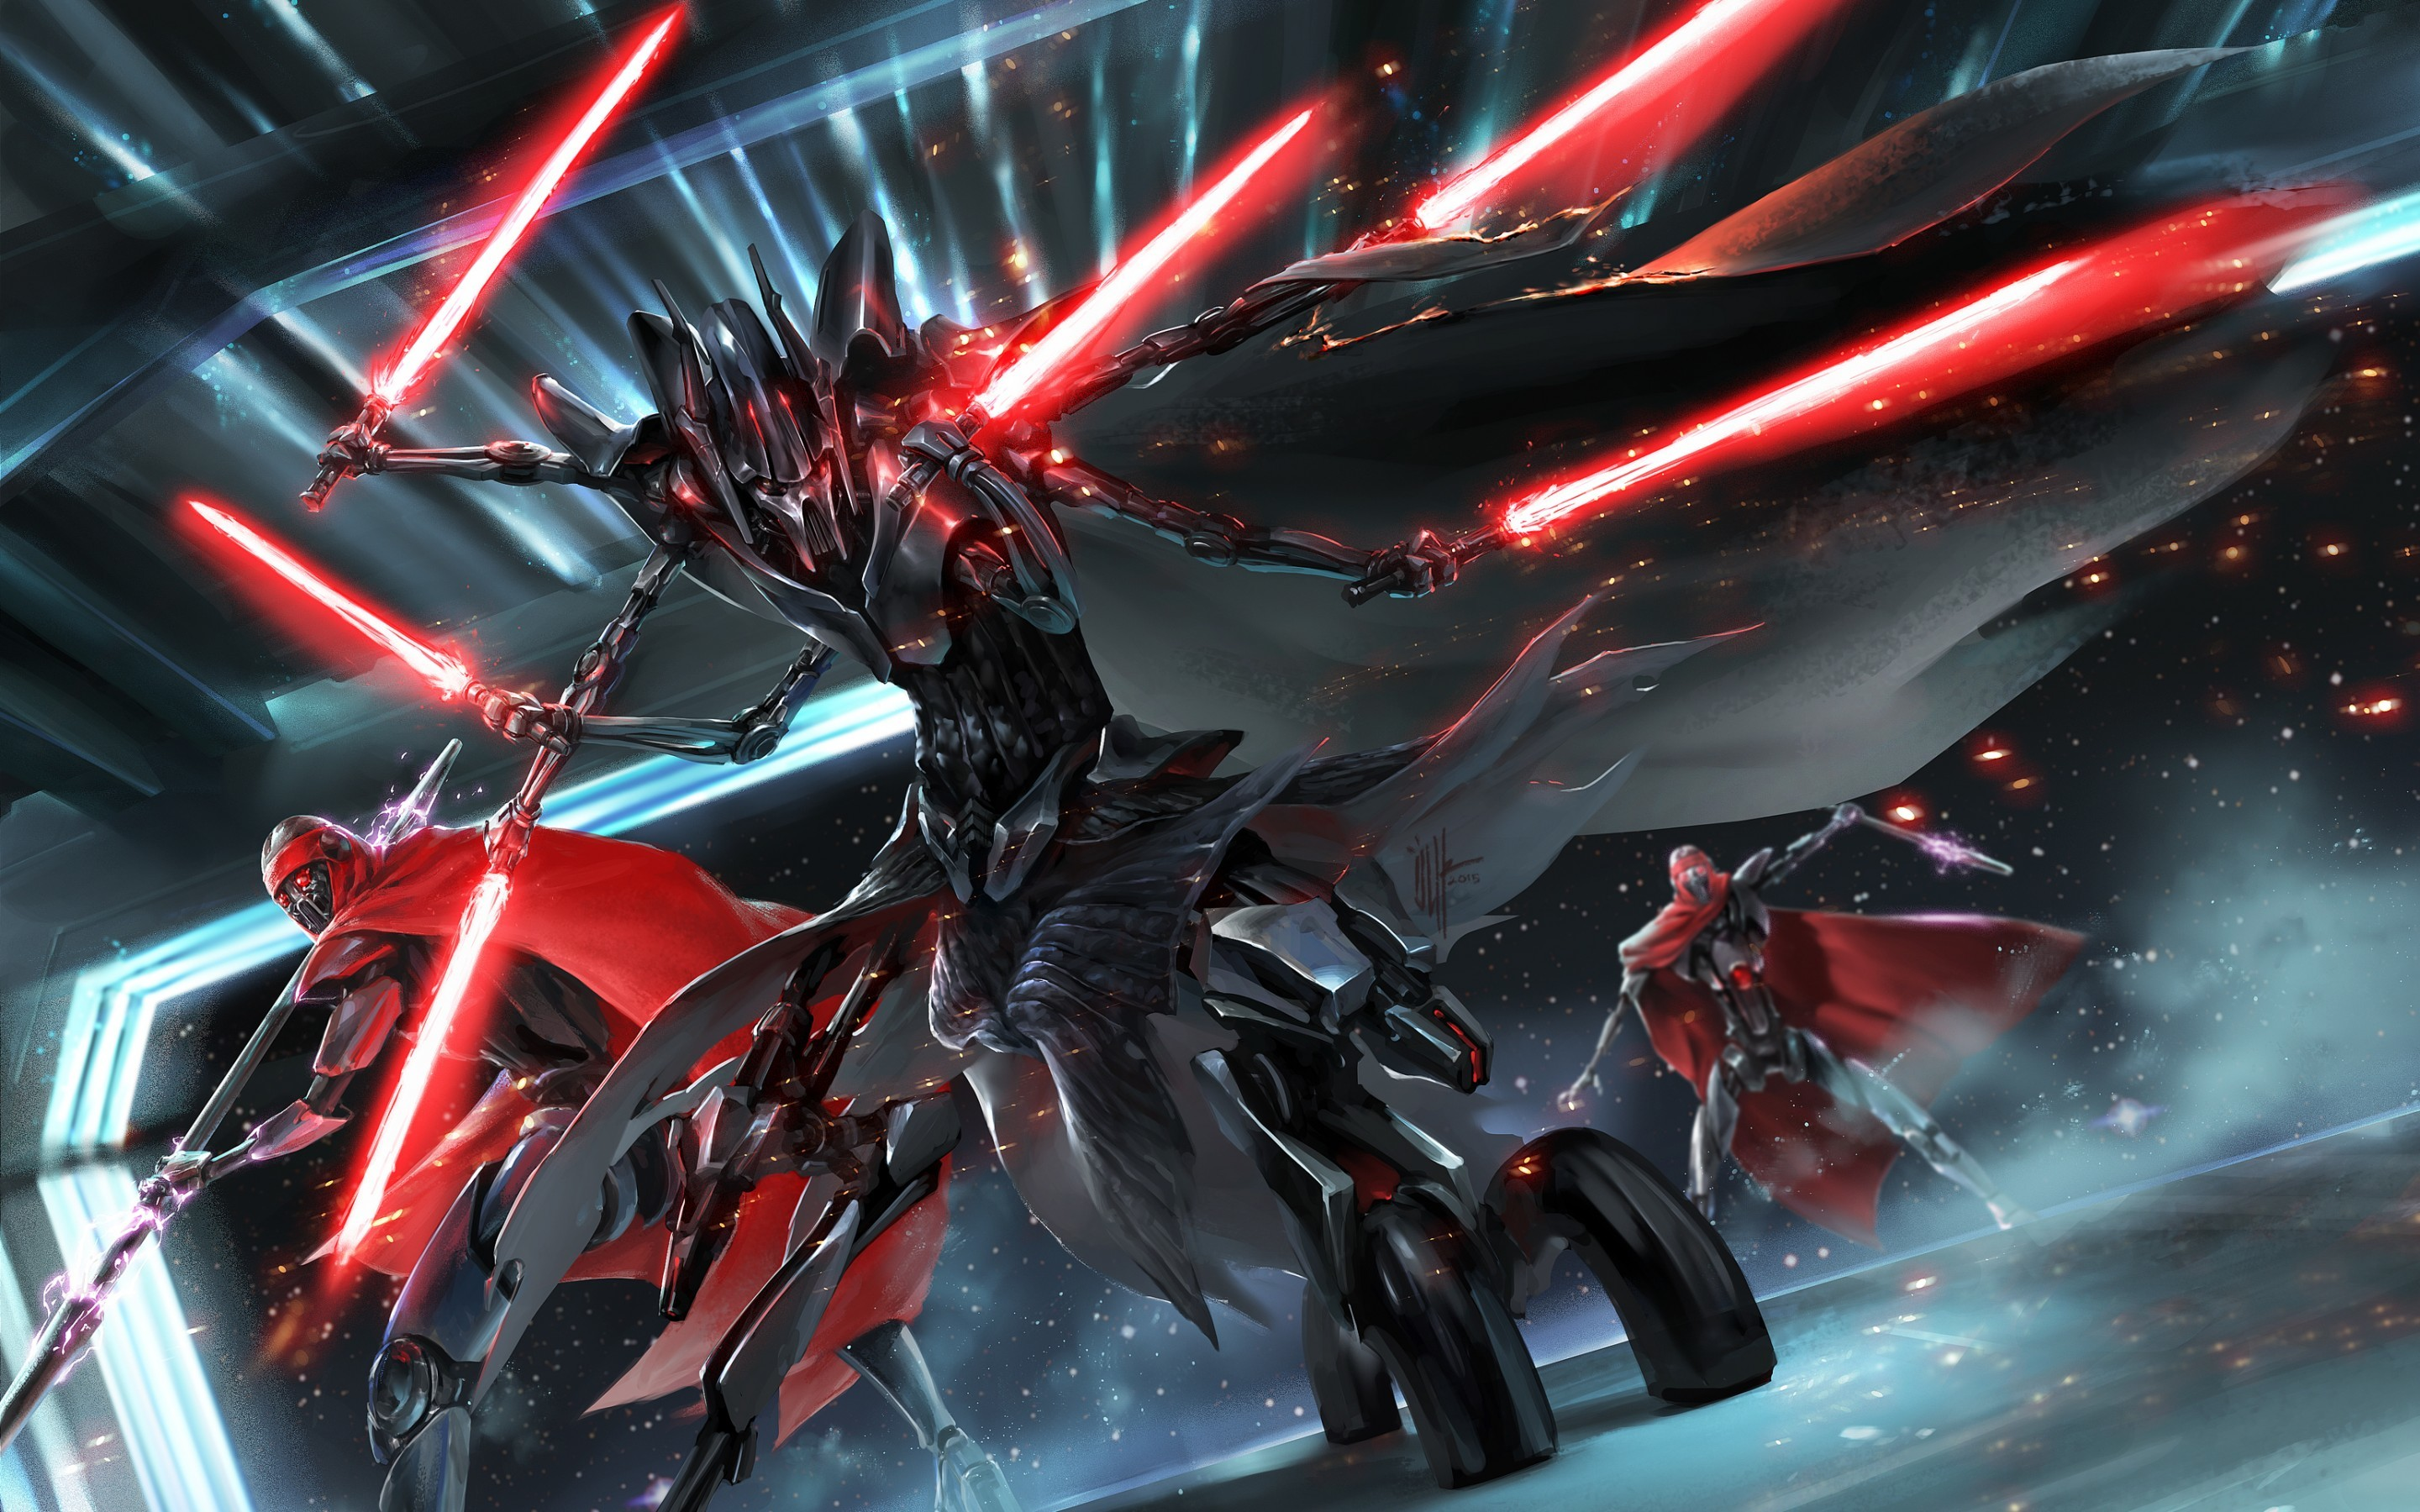 2880x1800 Tags: General Grievous, Star Wars ...